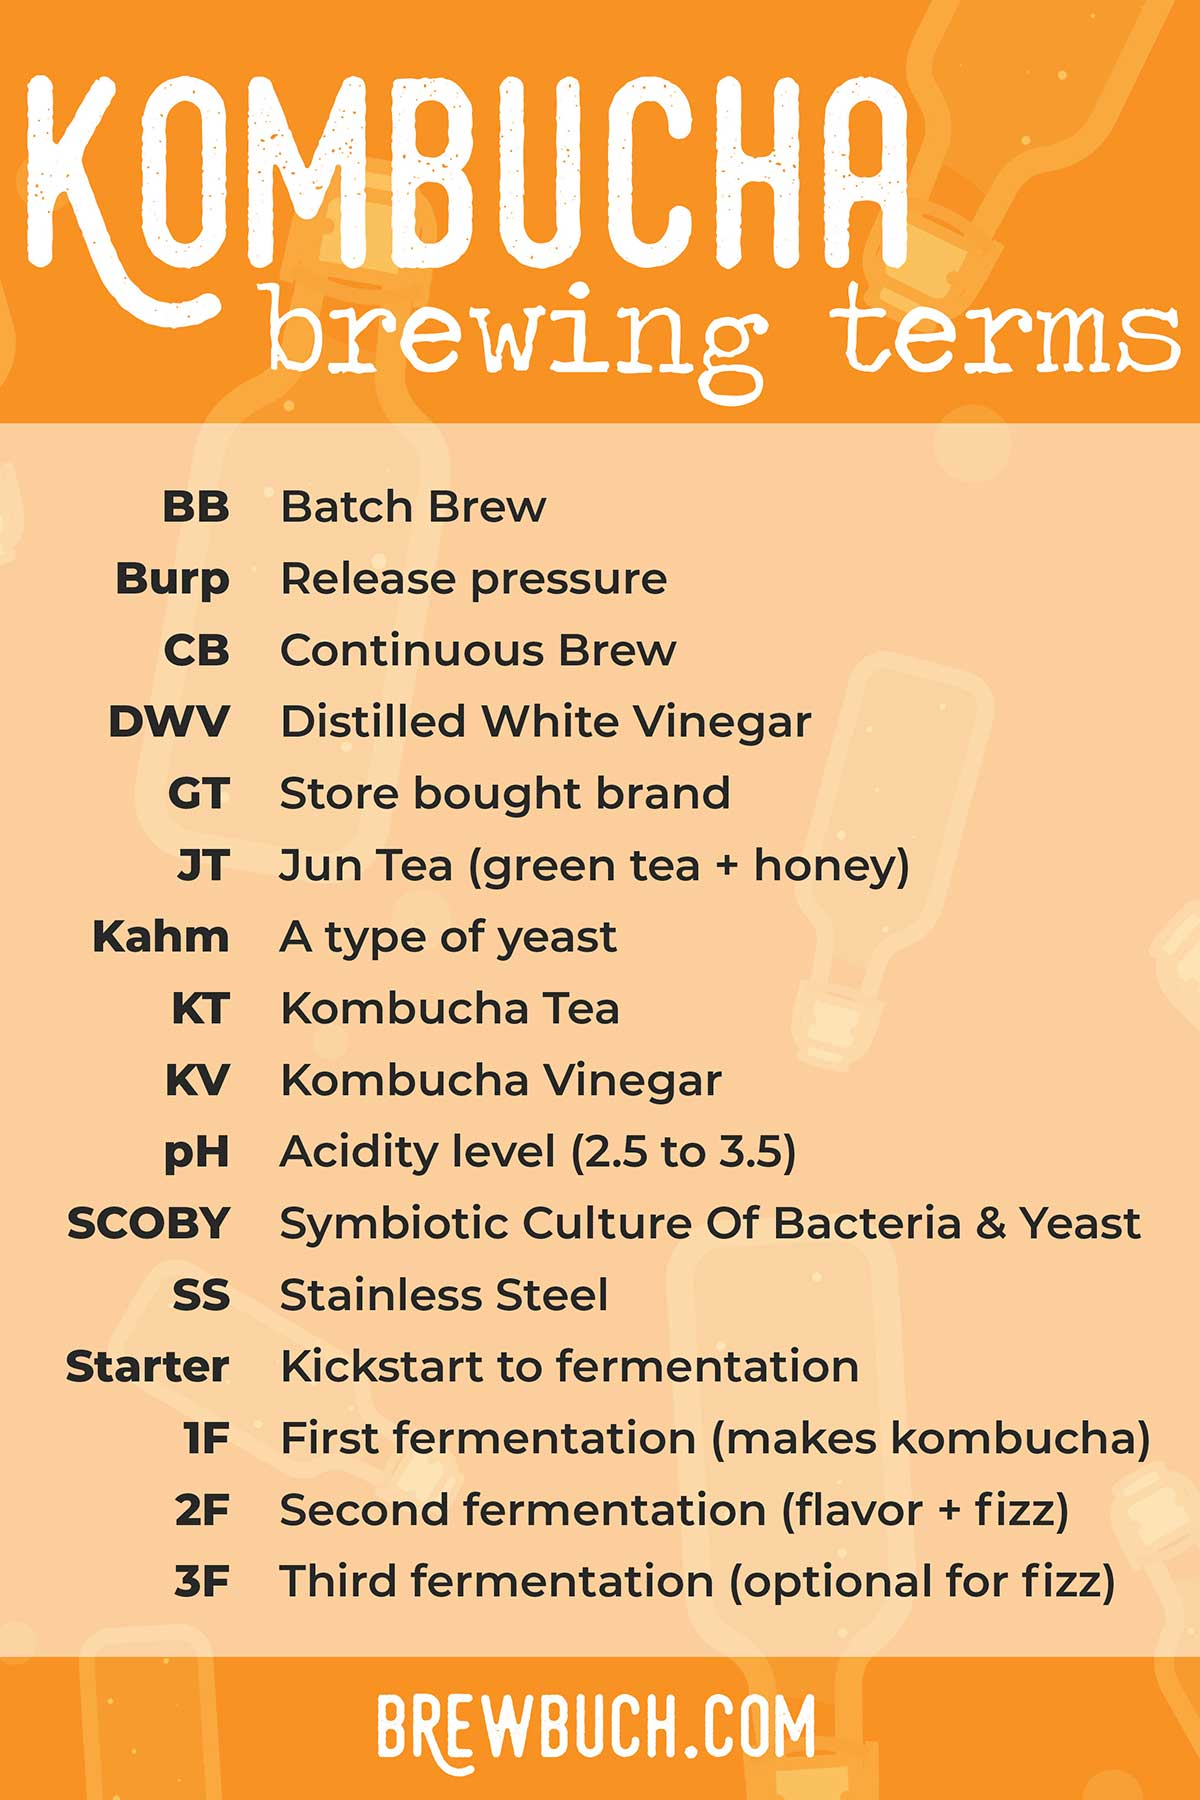 Photo with common kombucha terms and acronyms